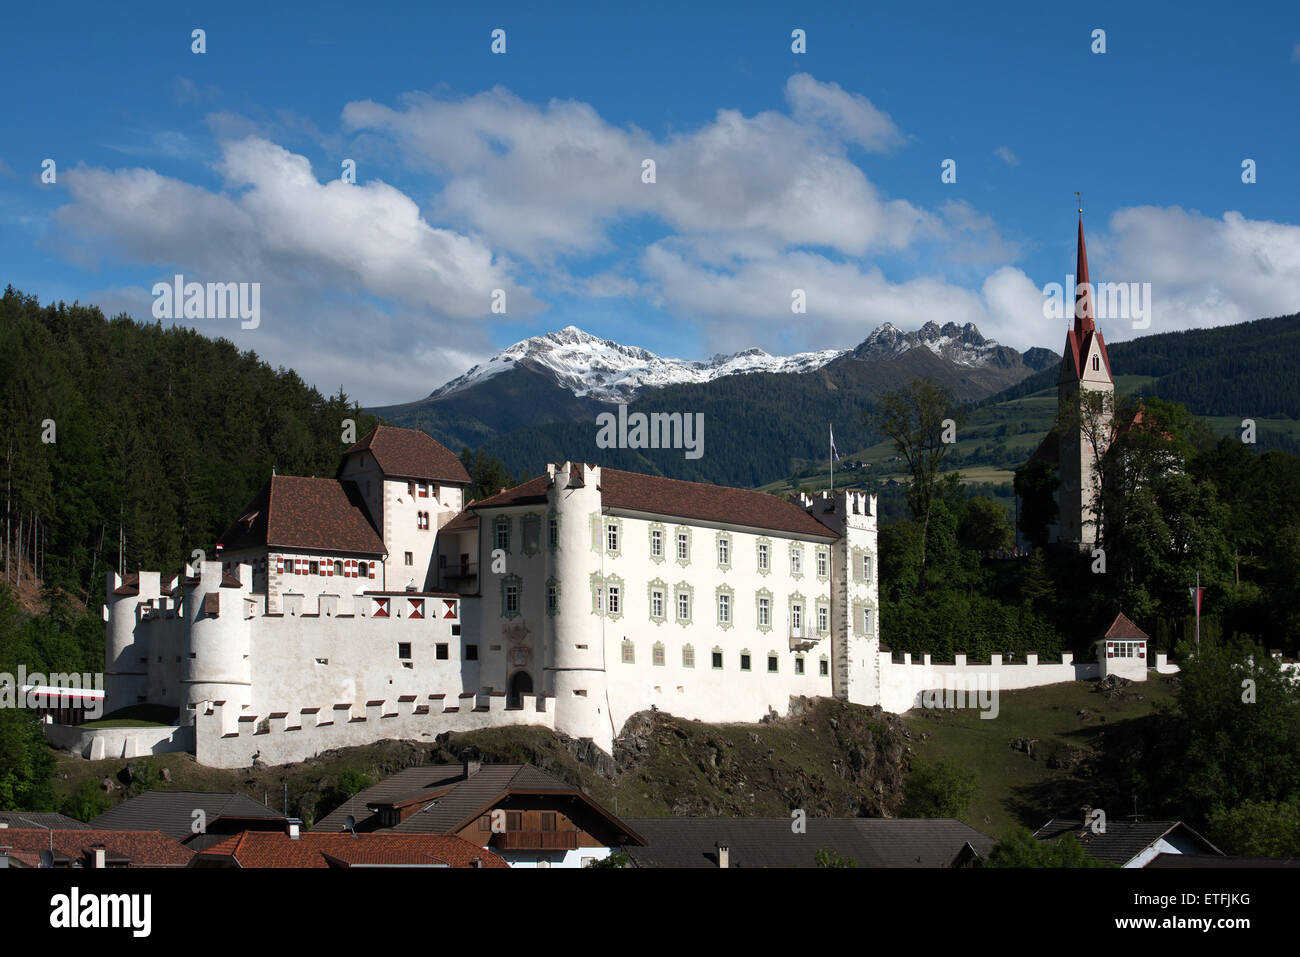 kirche und schloss ehrenburg kiens puster tal s dtirol italien europa stockfoto bild. Black Bedroom Furniture Sets. Home Design Ideas